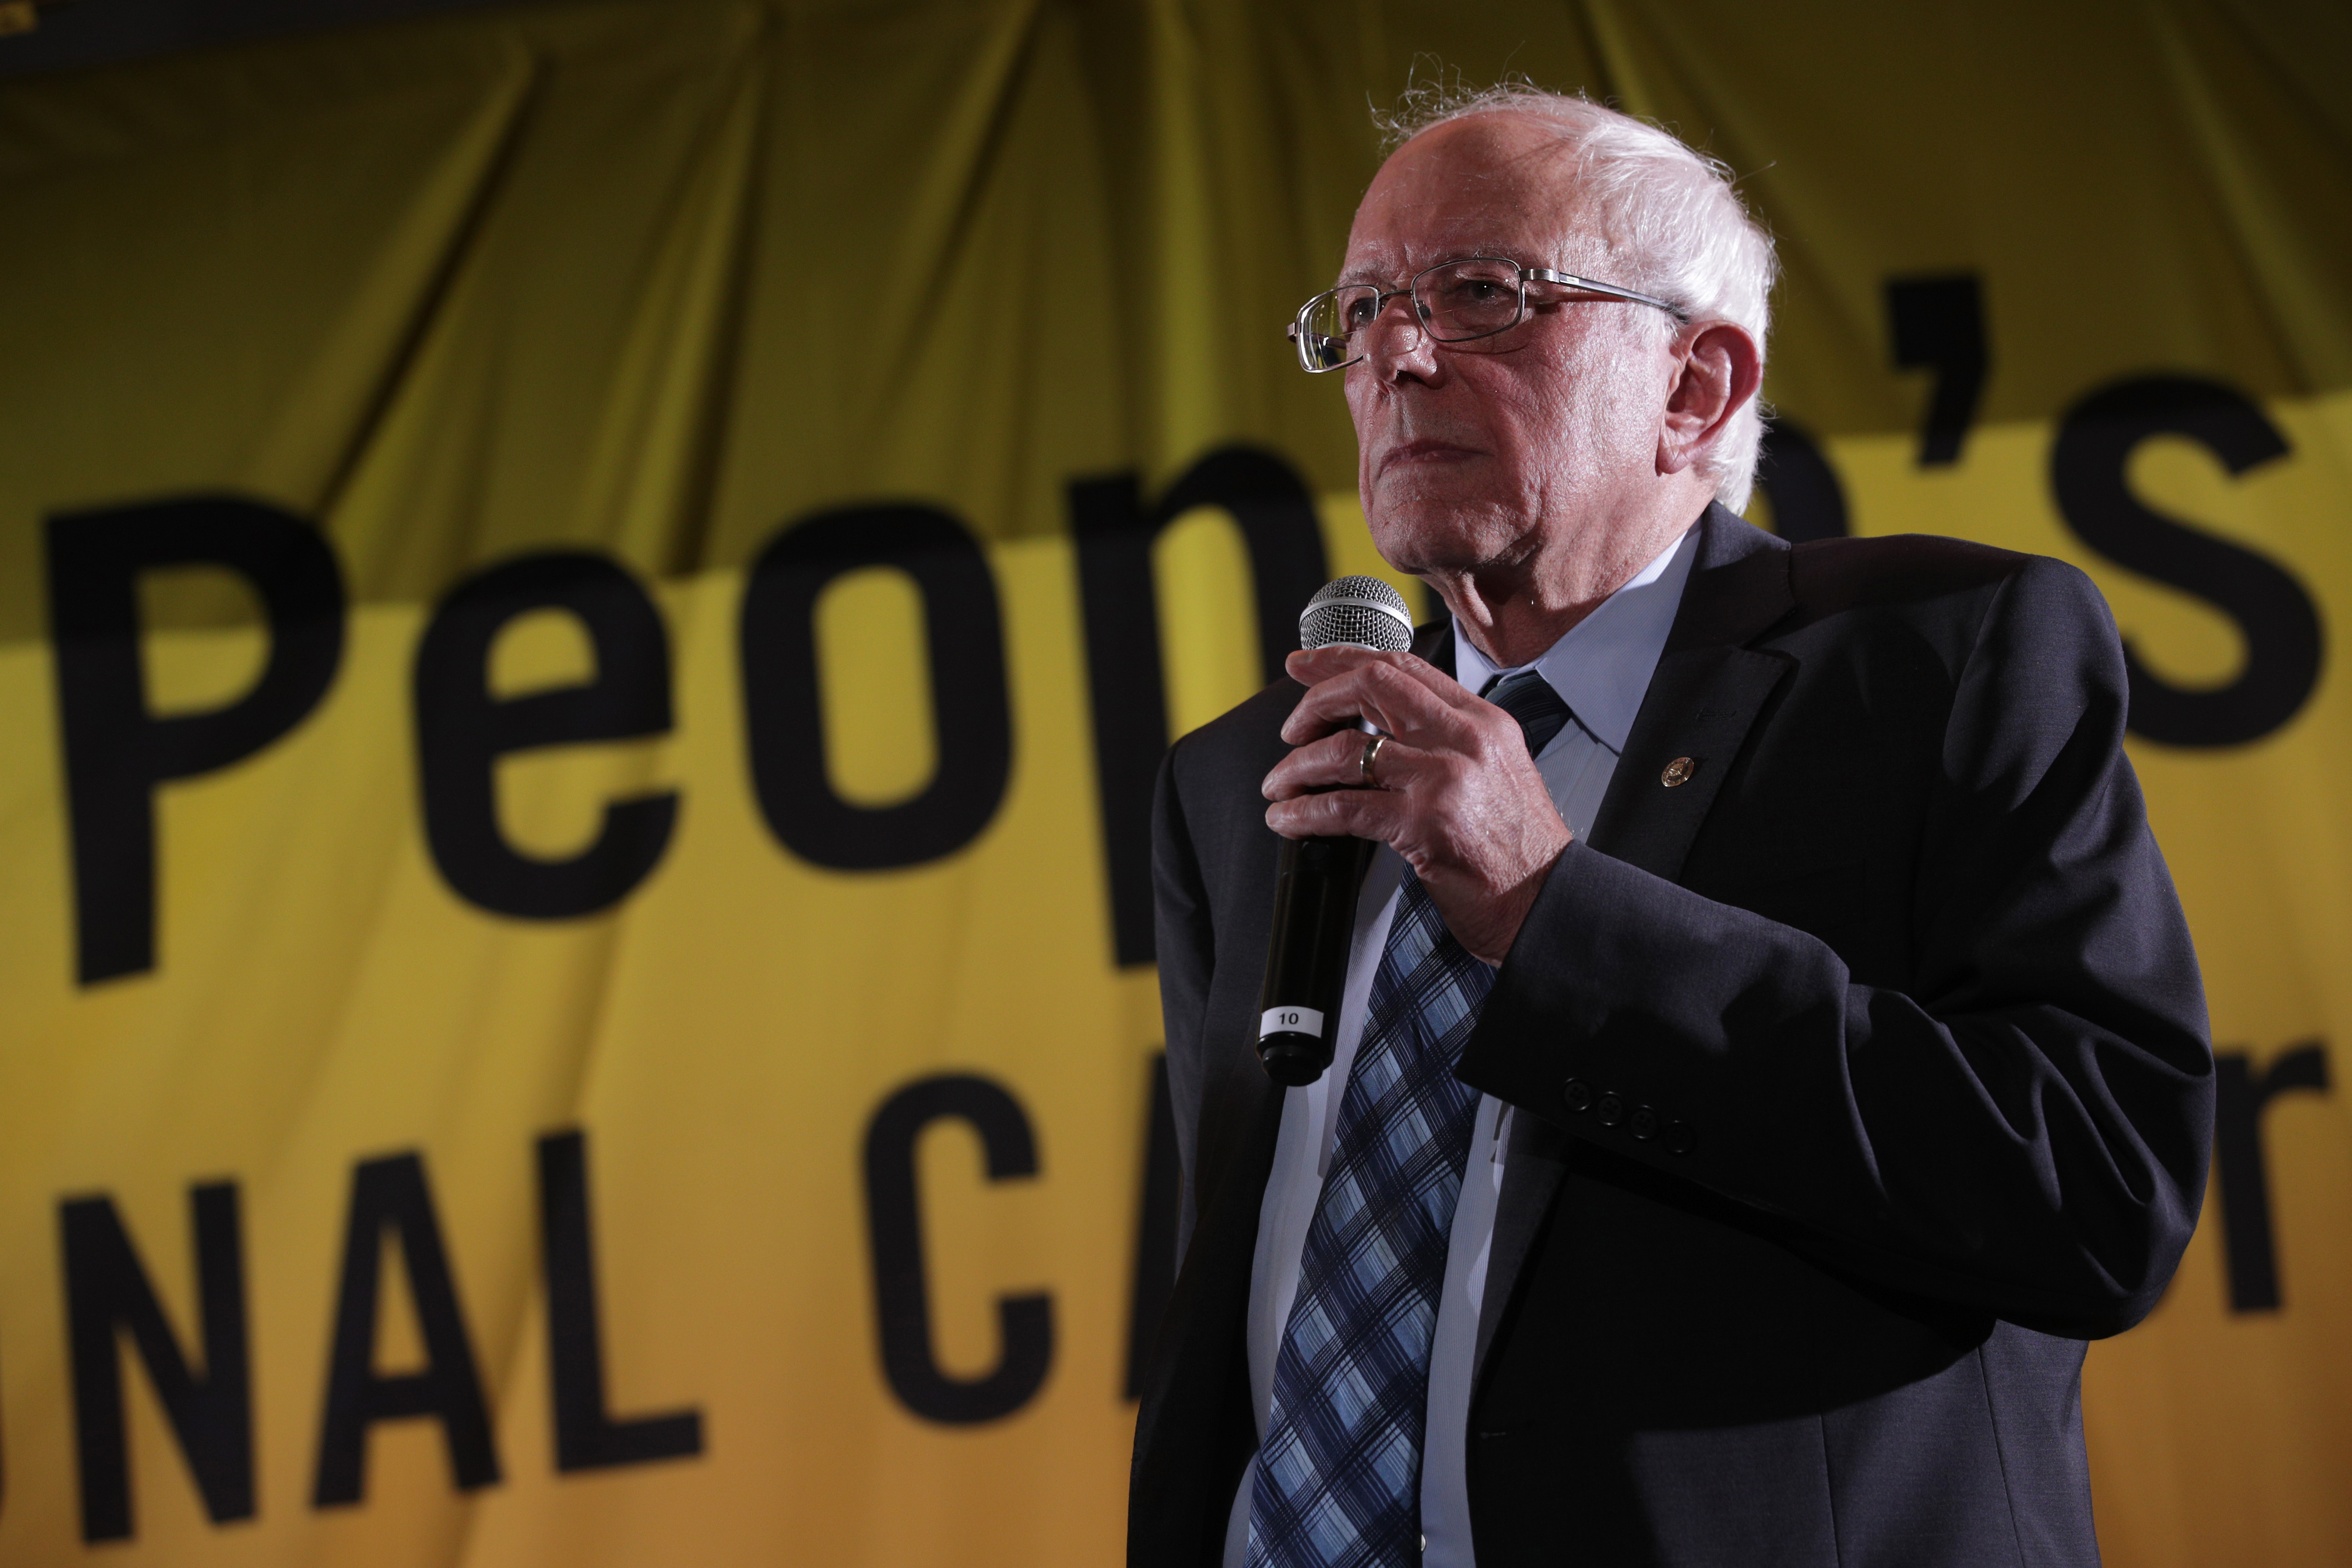 Vermont Sen. Berne Sanders was one of nine 2020 presidential candidates to speak at the Poor People's Campaign Presidential Forum on June 17, 2019.